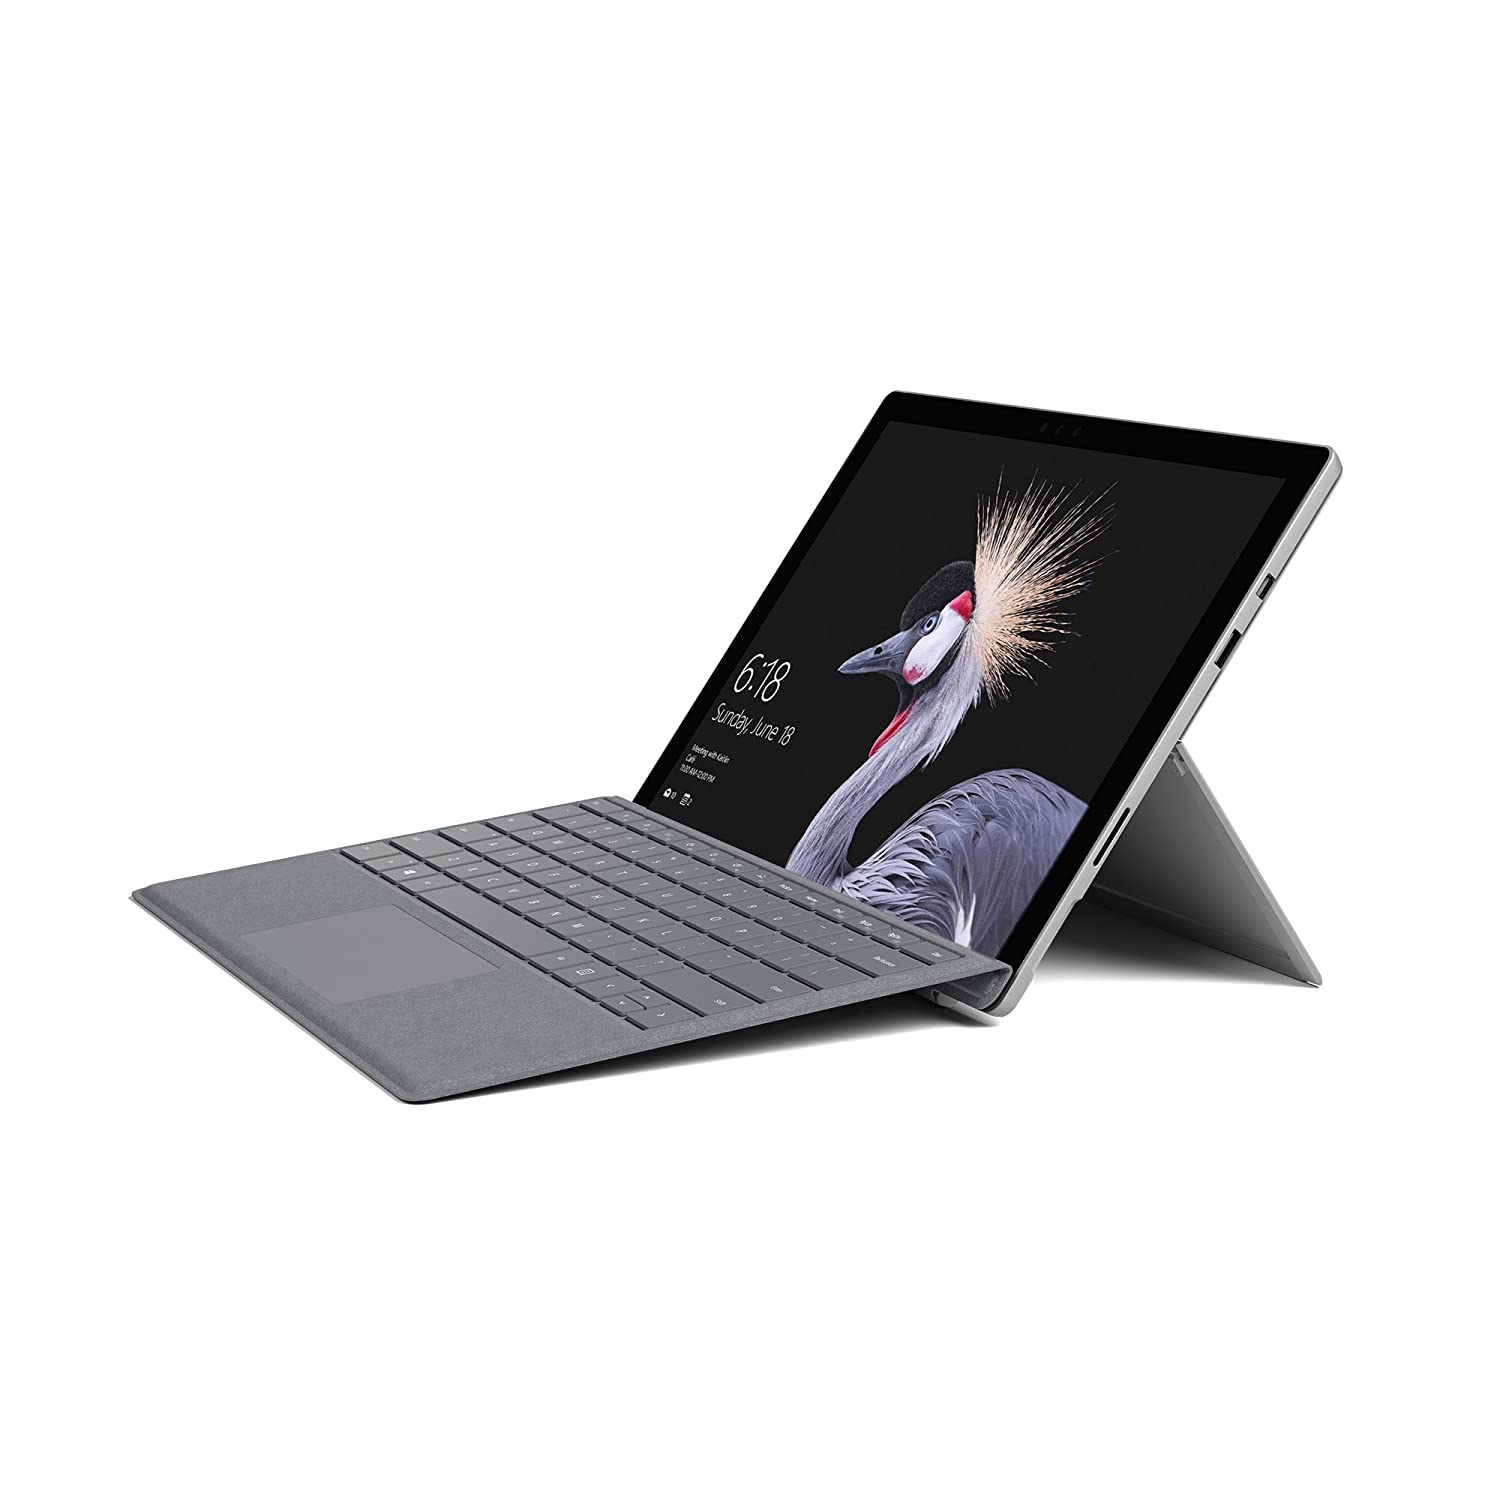 Portátil y tableta 2 en 1 Microsoft Surface Pro 31,24 cm (12,3 pulgadas) (Intel Core i5, 128 GB SSD, 8 GB de RAM, Win 10 Pro) incluye Teclado Surface Pro Signature Type Cover (platino gris).